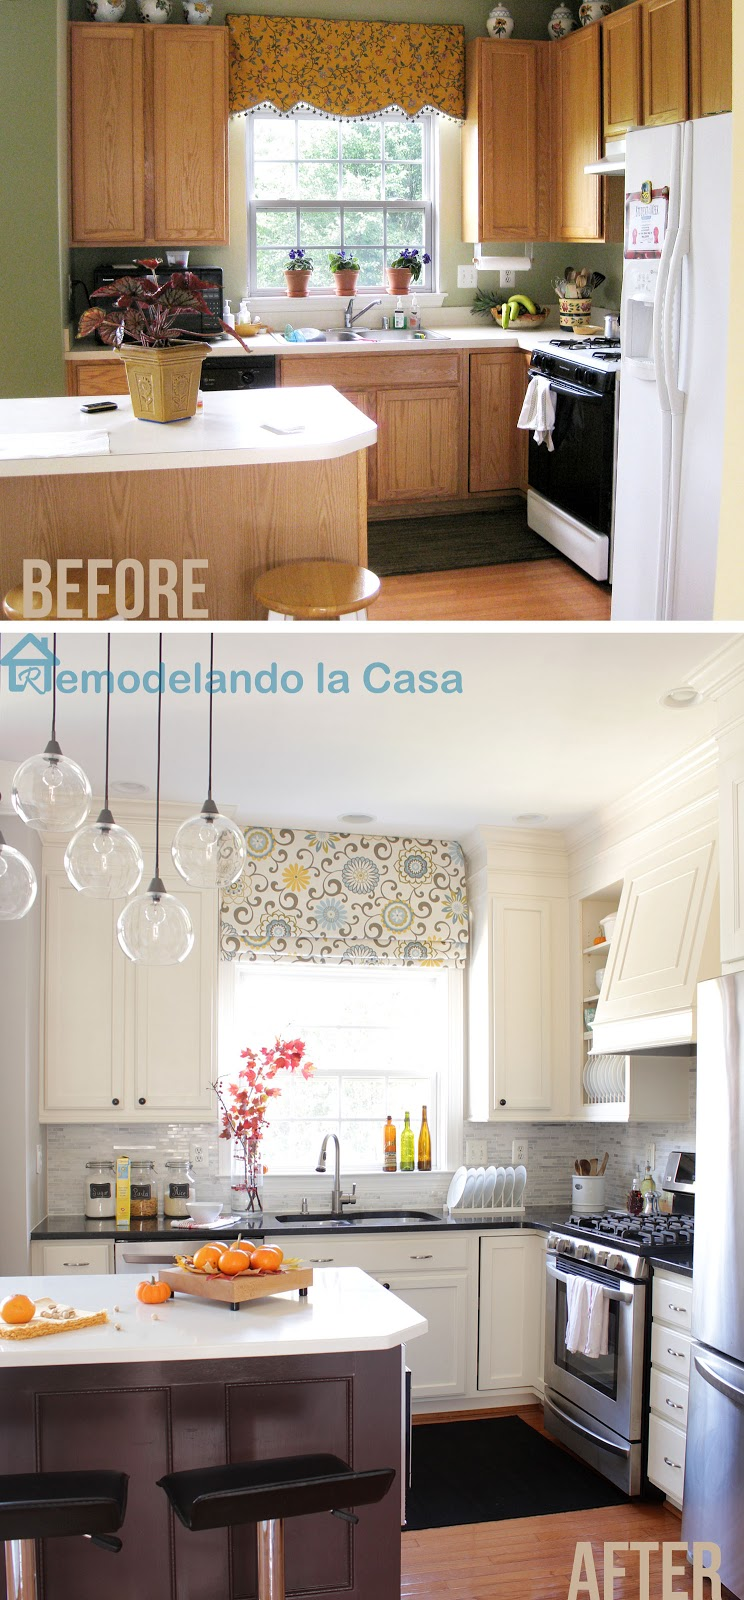 before and after of diy kitchen makeover on a budget with painted cabinets, closed space above cabinets, diy range hood and fridge enclosure.